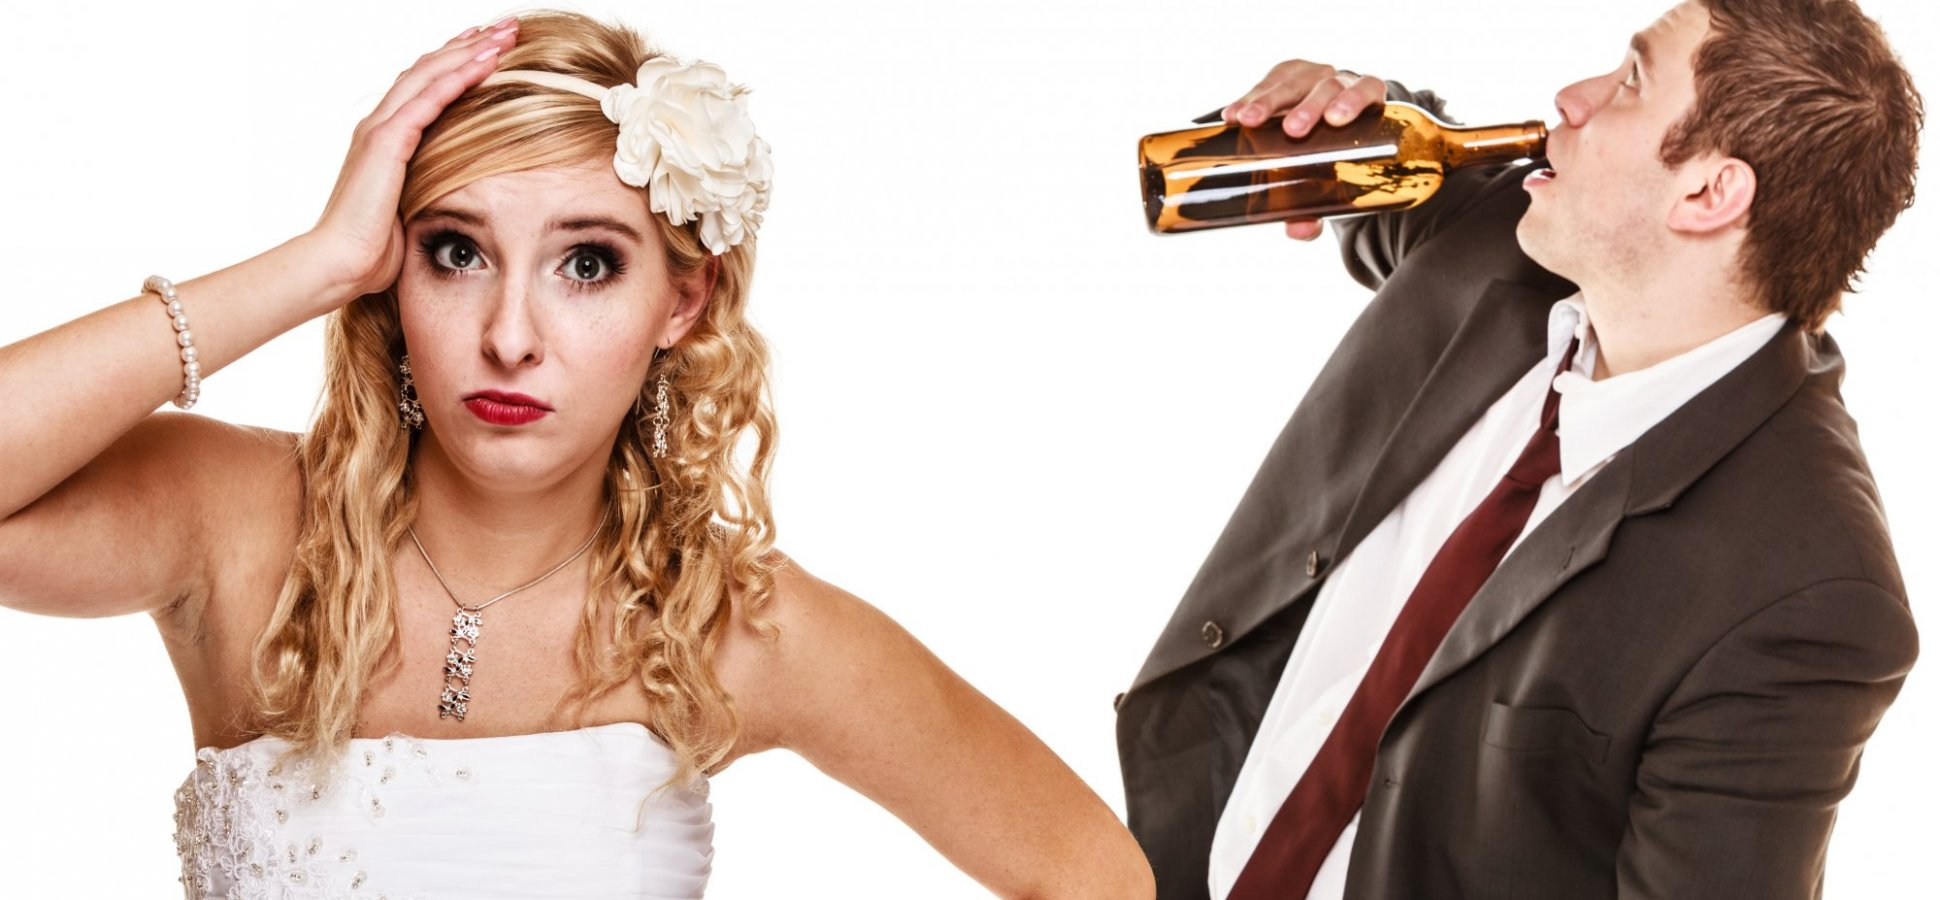 Our Employee Caused a Drunken Scene at a Coworker's Wedding